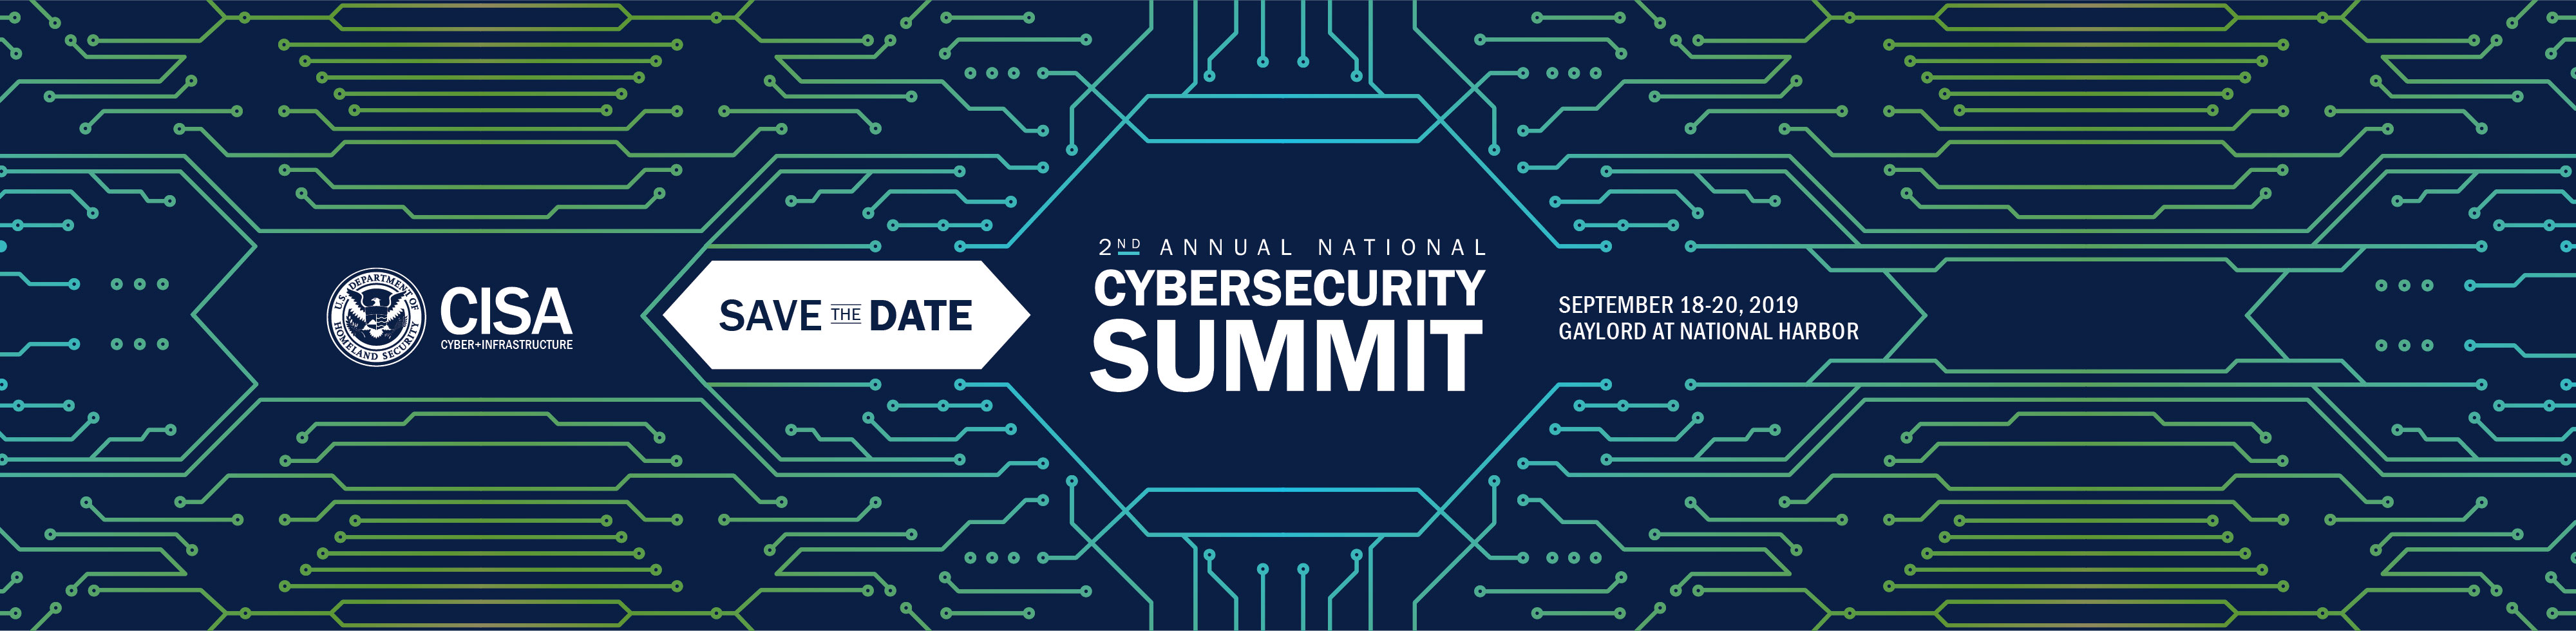 U.S. Department of Homeland Security Seal. CISA. Cyber+Infrastructure. Save the Date. Cybersecurity Summit. September 18-20, 2019. National Harbor, MD